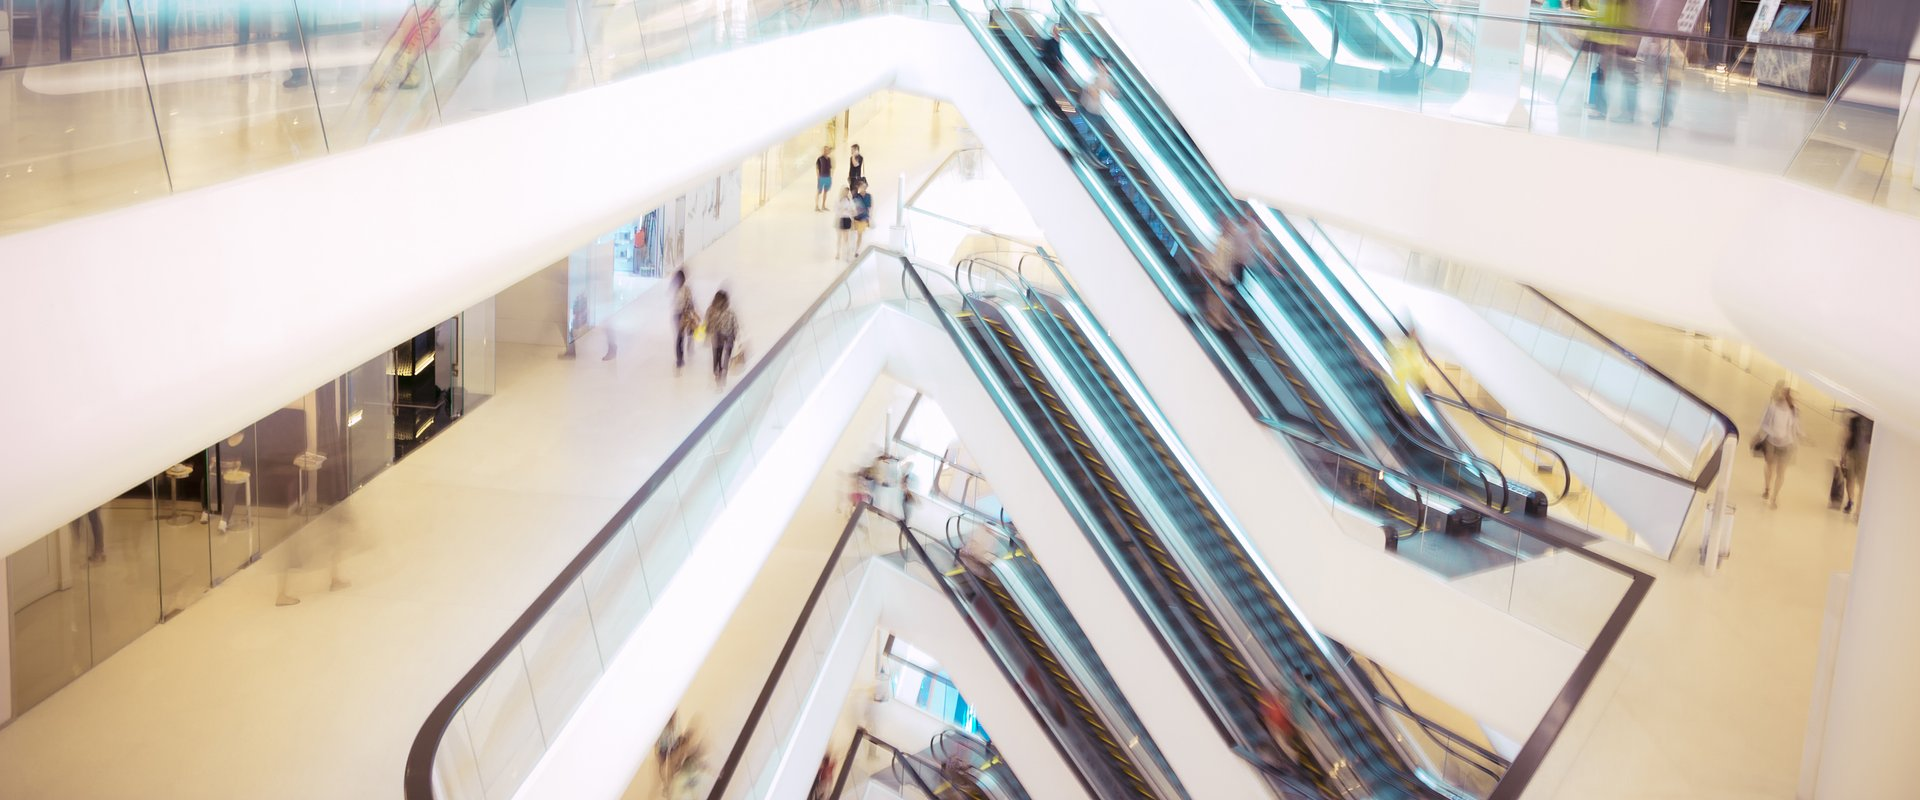 The modern retail sector is being tested to its limits; fundamental changes are becoming the new reality